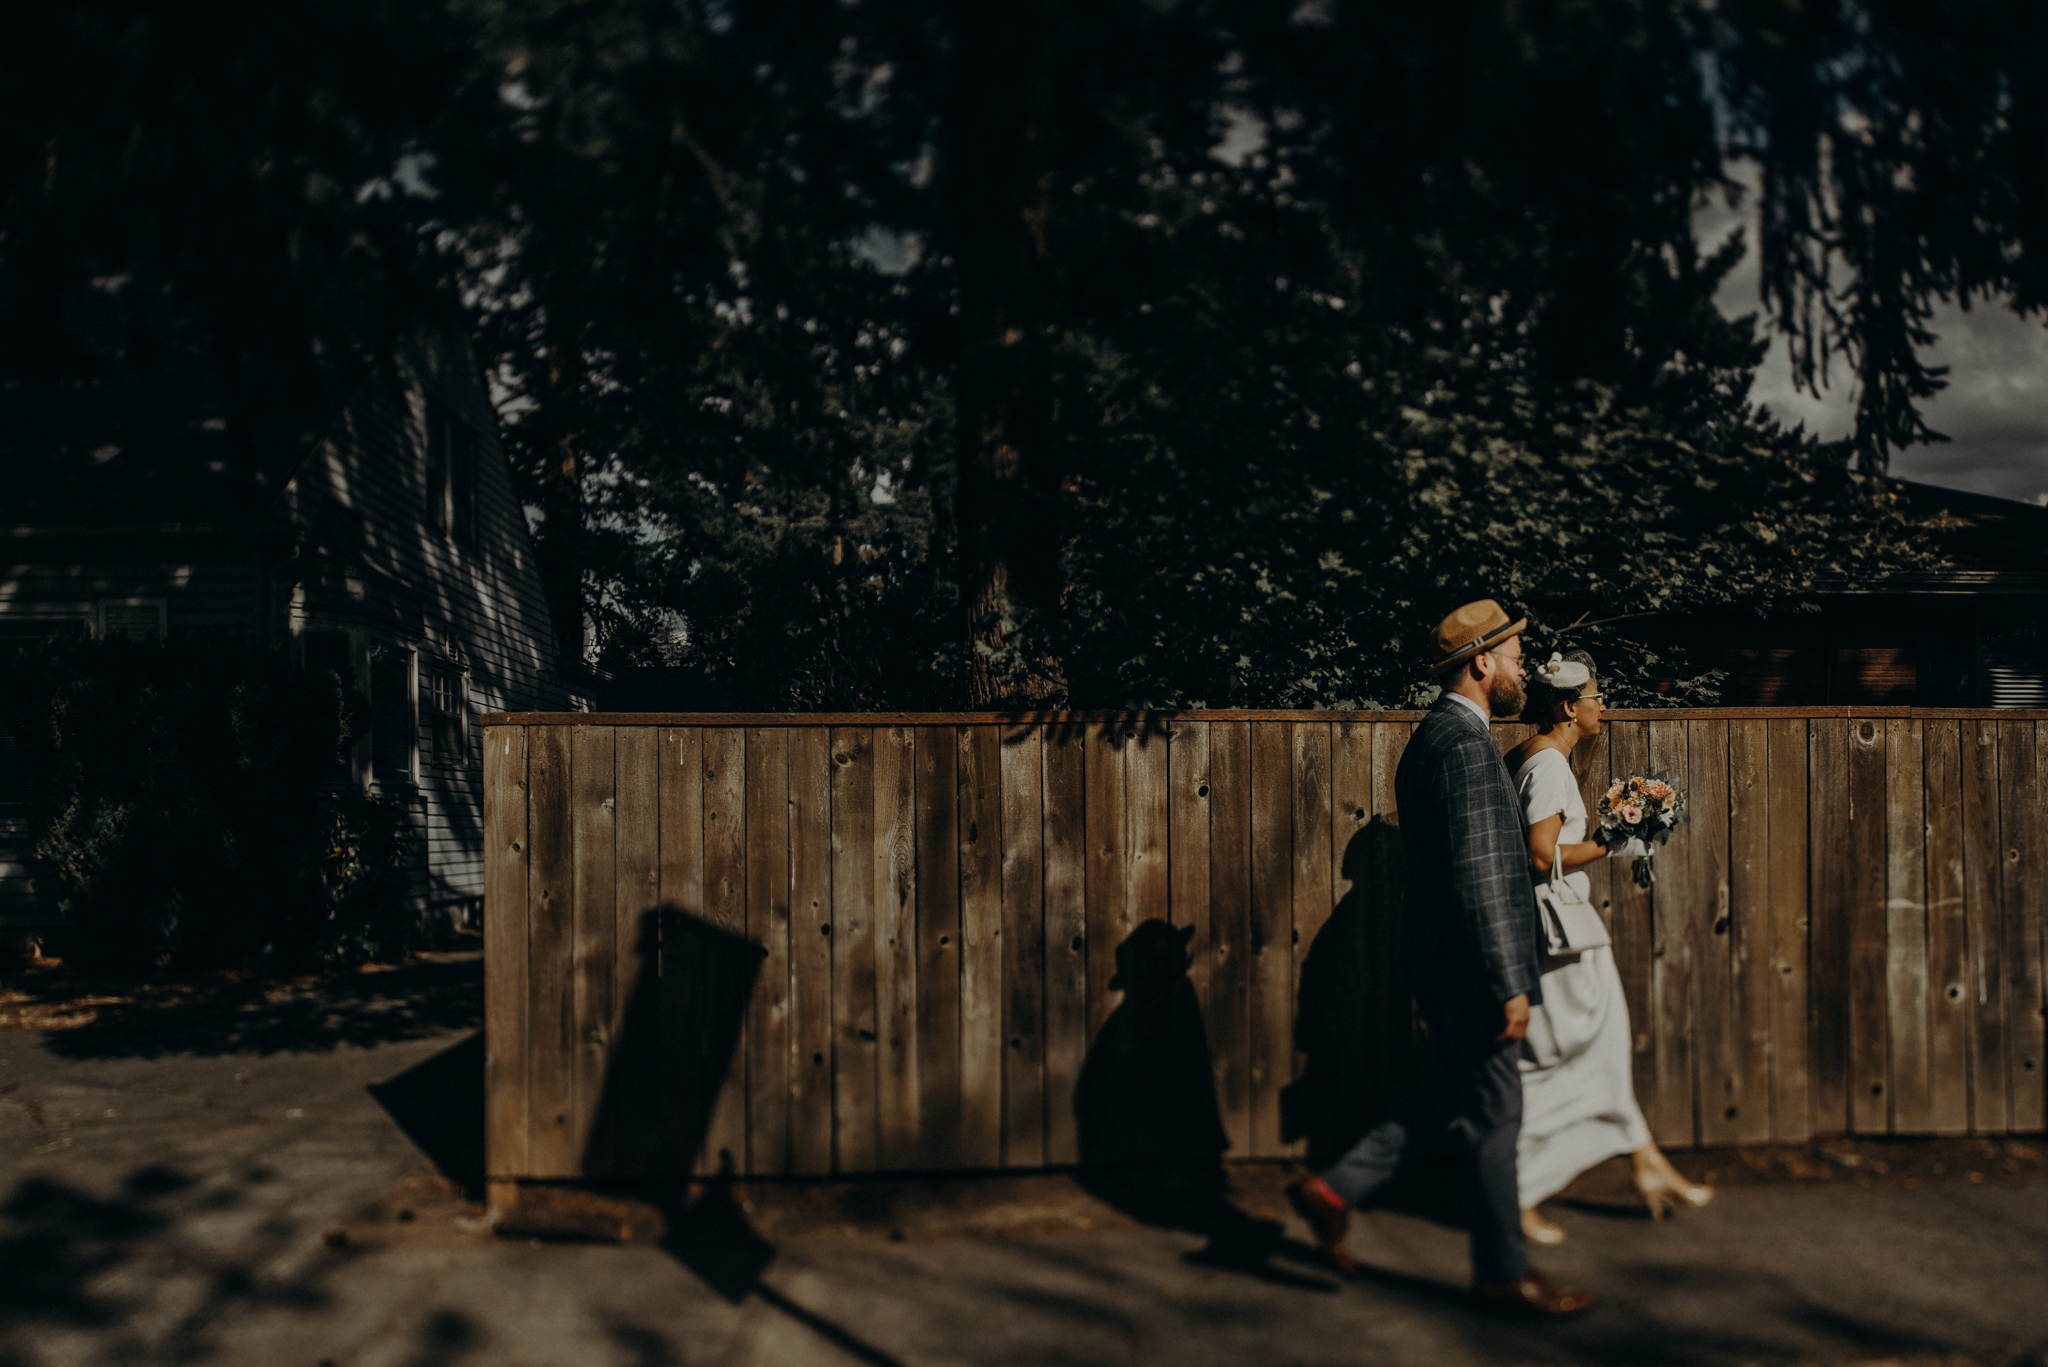 Los Angeles Wedding Photographer - Portland Elopement Photographer - IsaiahAndTaylor.com-064.jpg